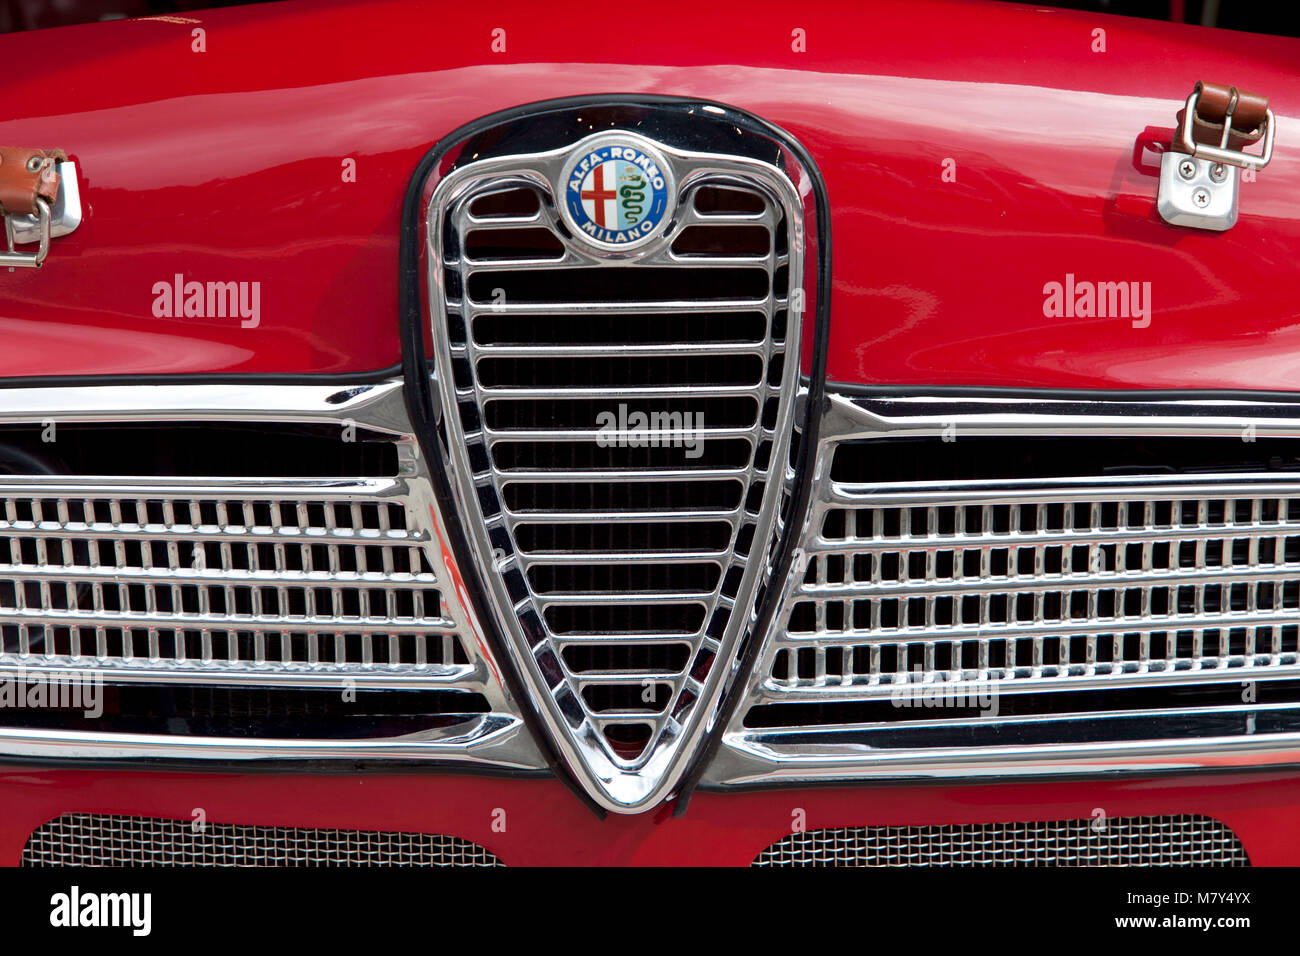 1960's red Alfa Romeo front grill close up, classic car art, design [, red - Stock Image